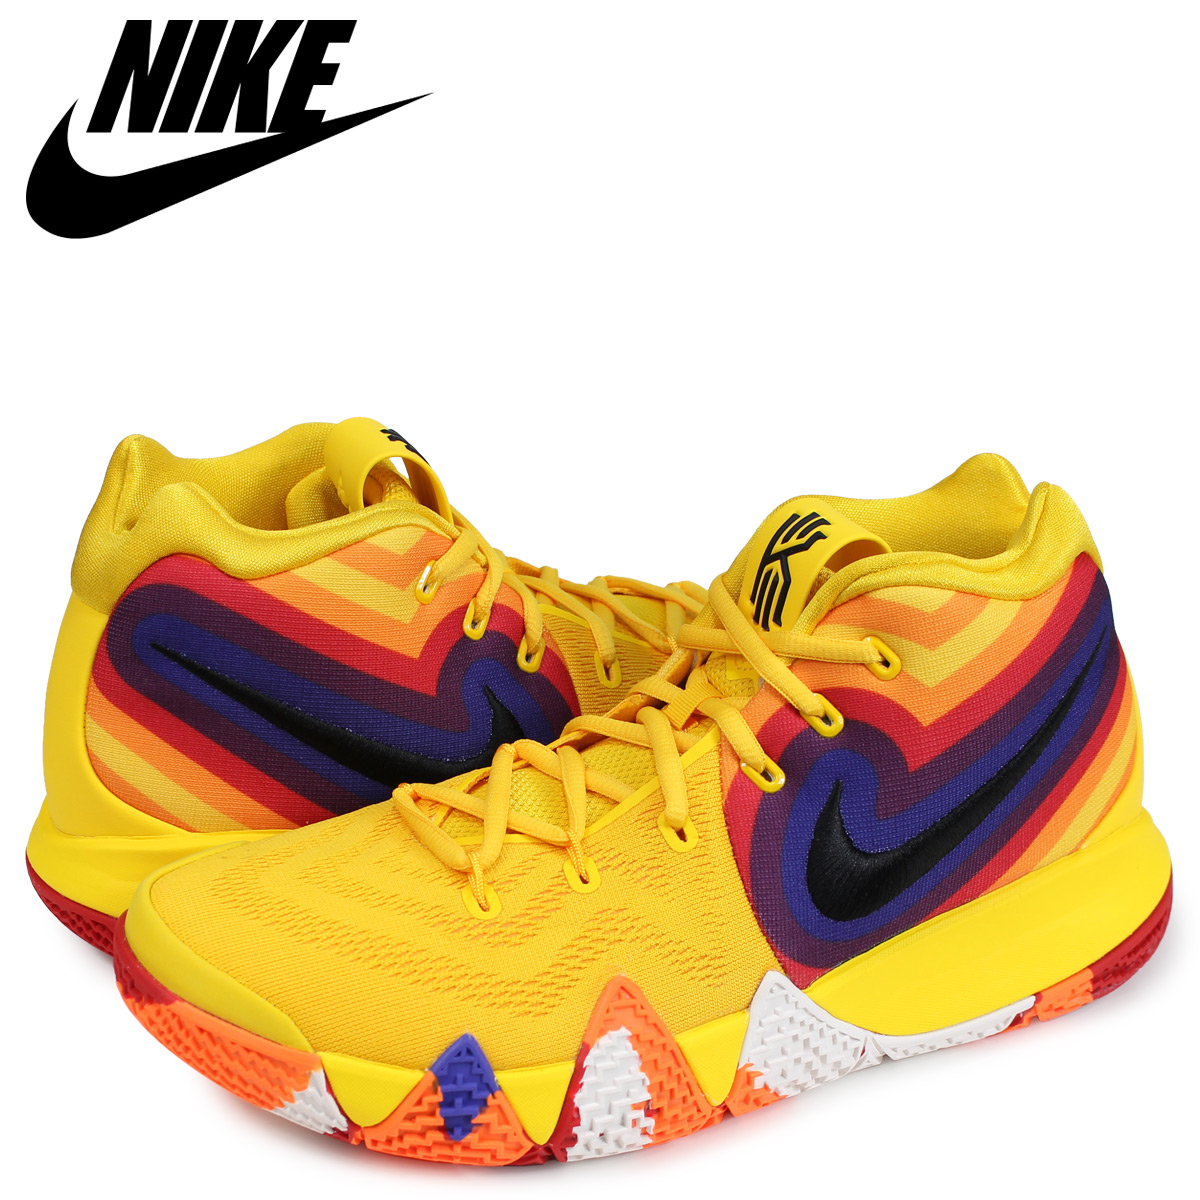 the latest 6cb93 60ffc NIKE Nike chi Lee 4 sneakers men KYRIE 4 EP 70s DECADES PACK yellow  943,807-700